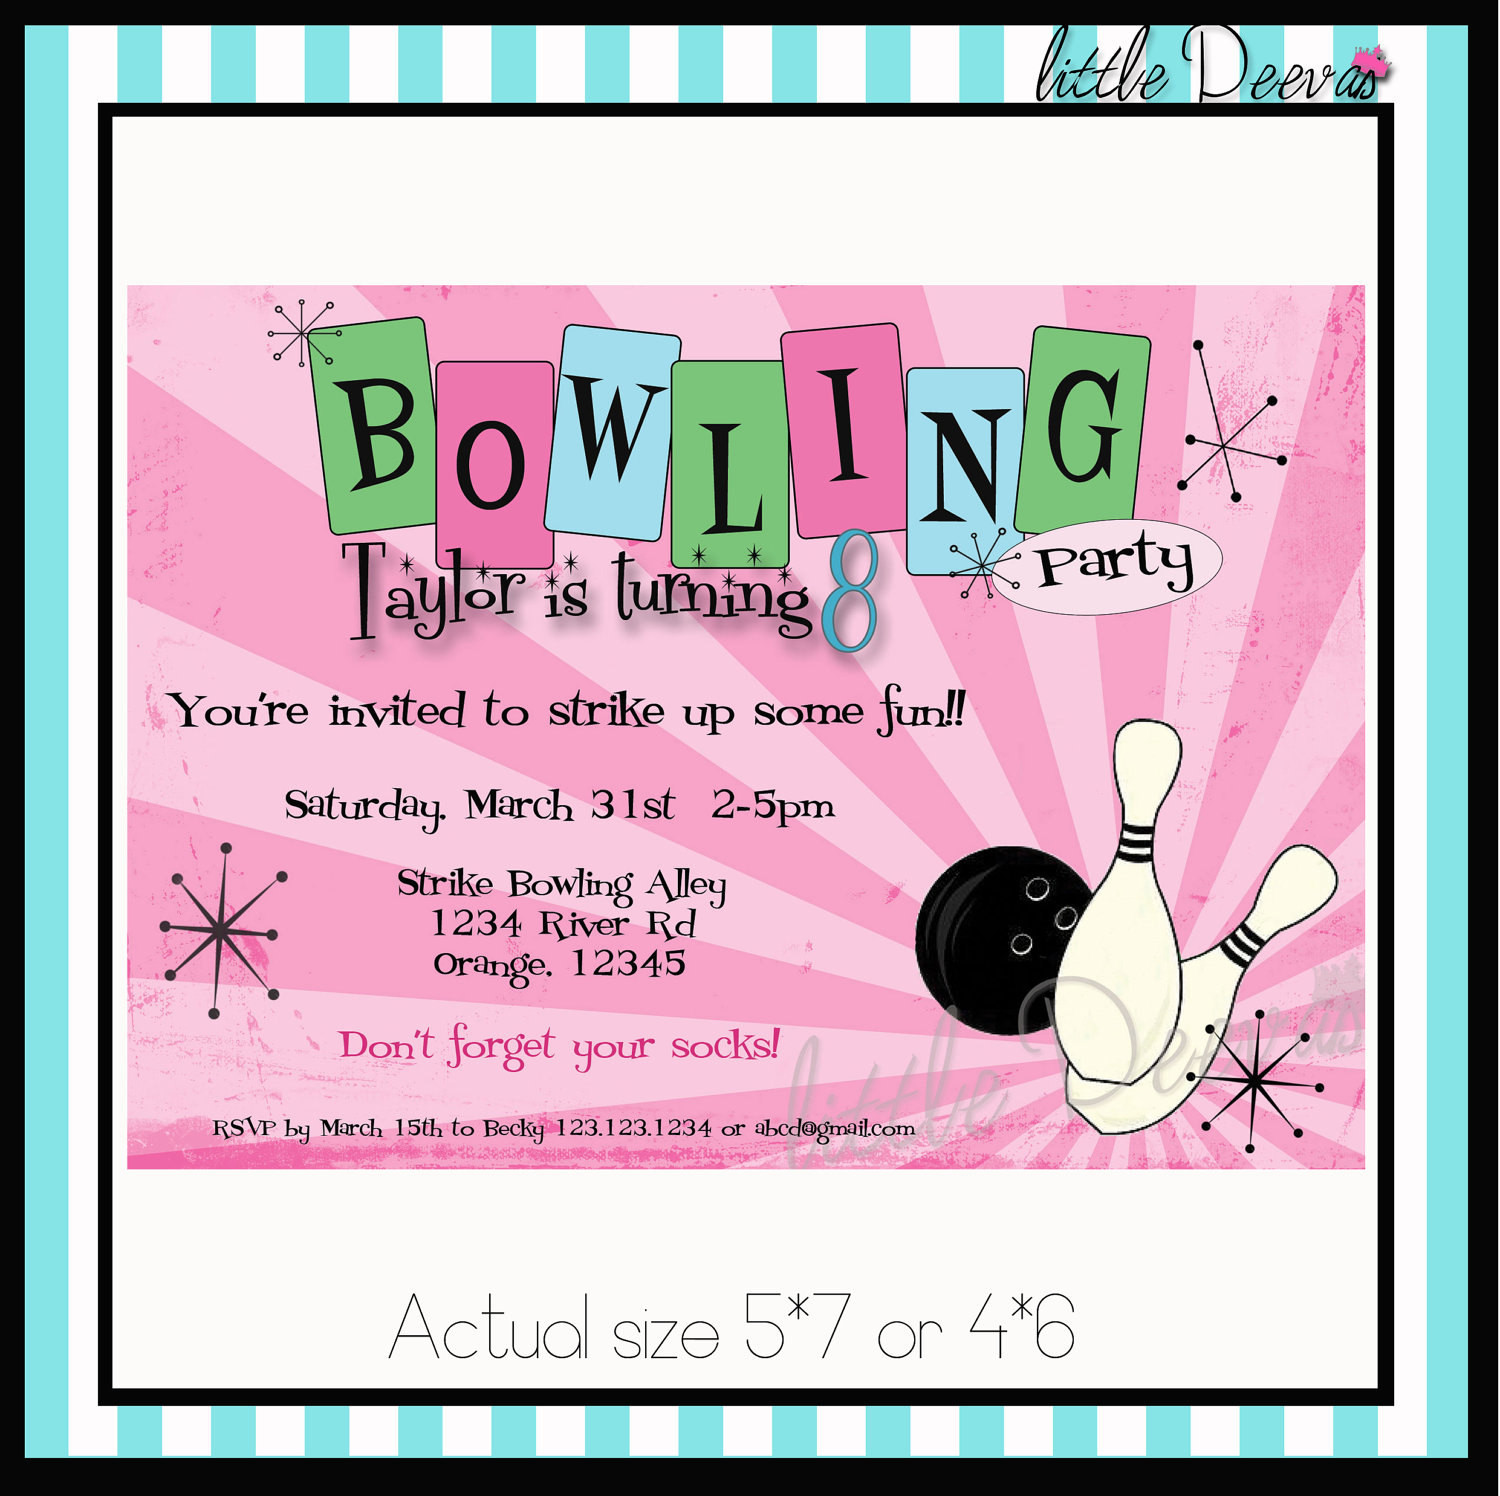 Best ideas about Custom Birthday Party Invitations . Save or Pin Bowling Birthday Invitation Custom wording and by LittleDeevas Now.